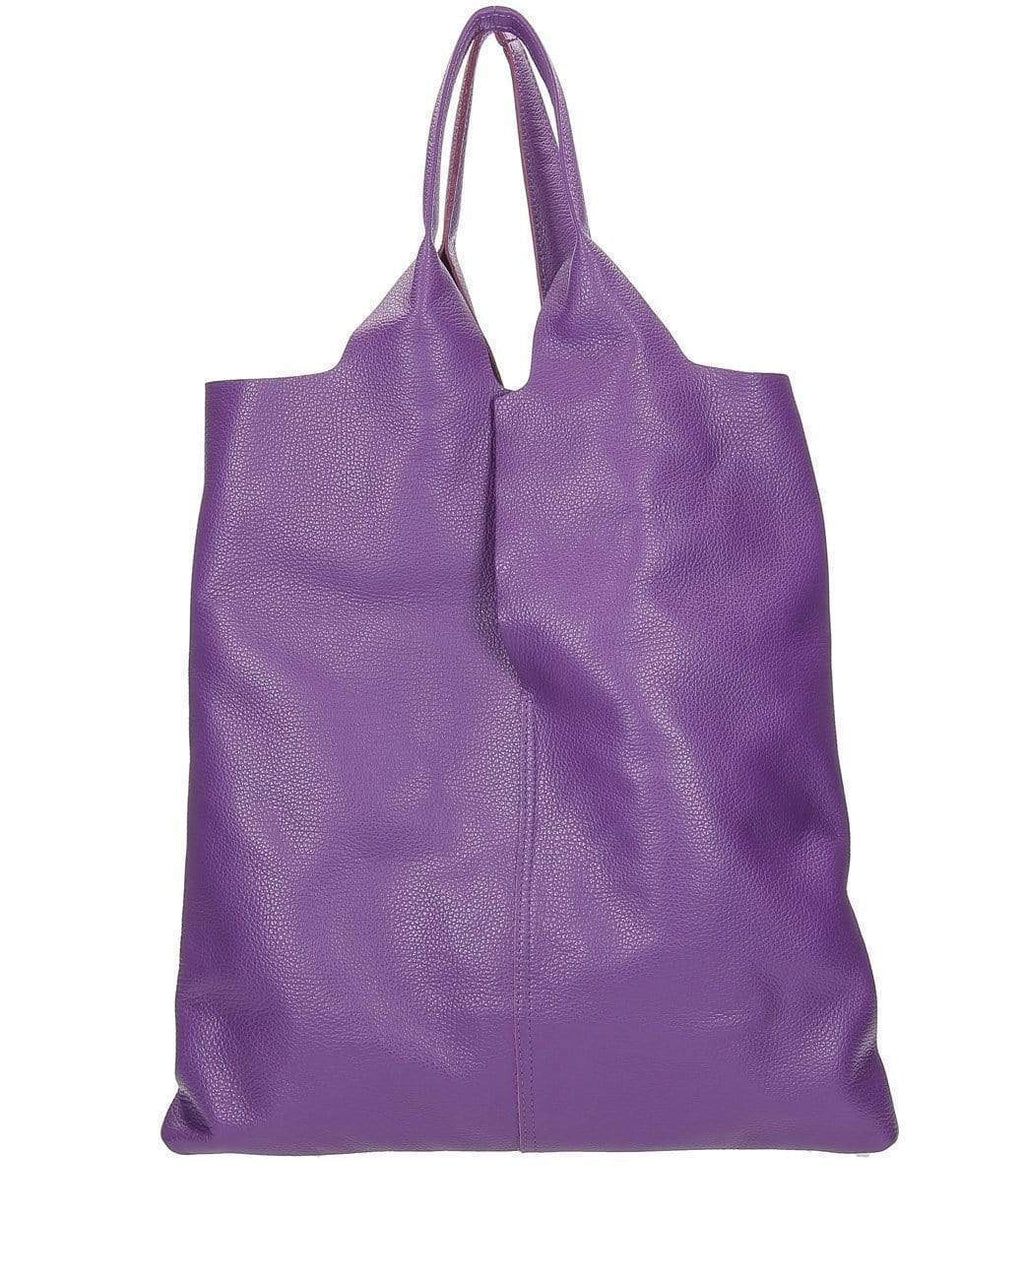 BURANALAB-TUMBLED LEATHER TOTE BAG-BAGS-ENVELOPE-DOLLARO-VIOLA D45-Tozzibologna.com